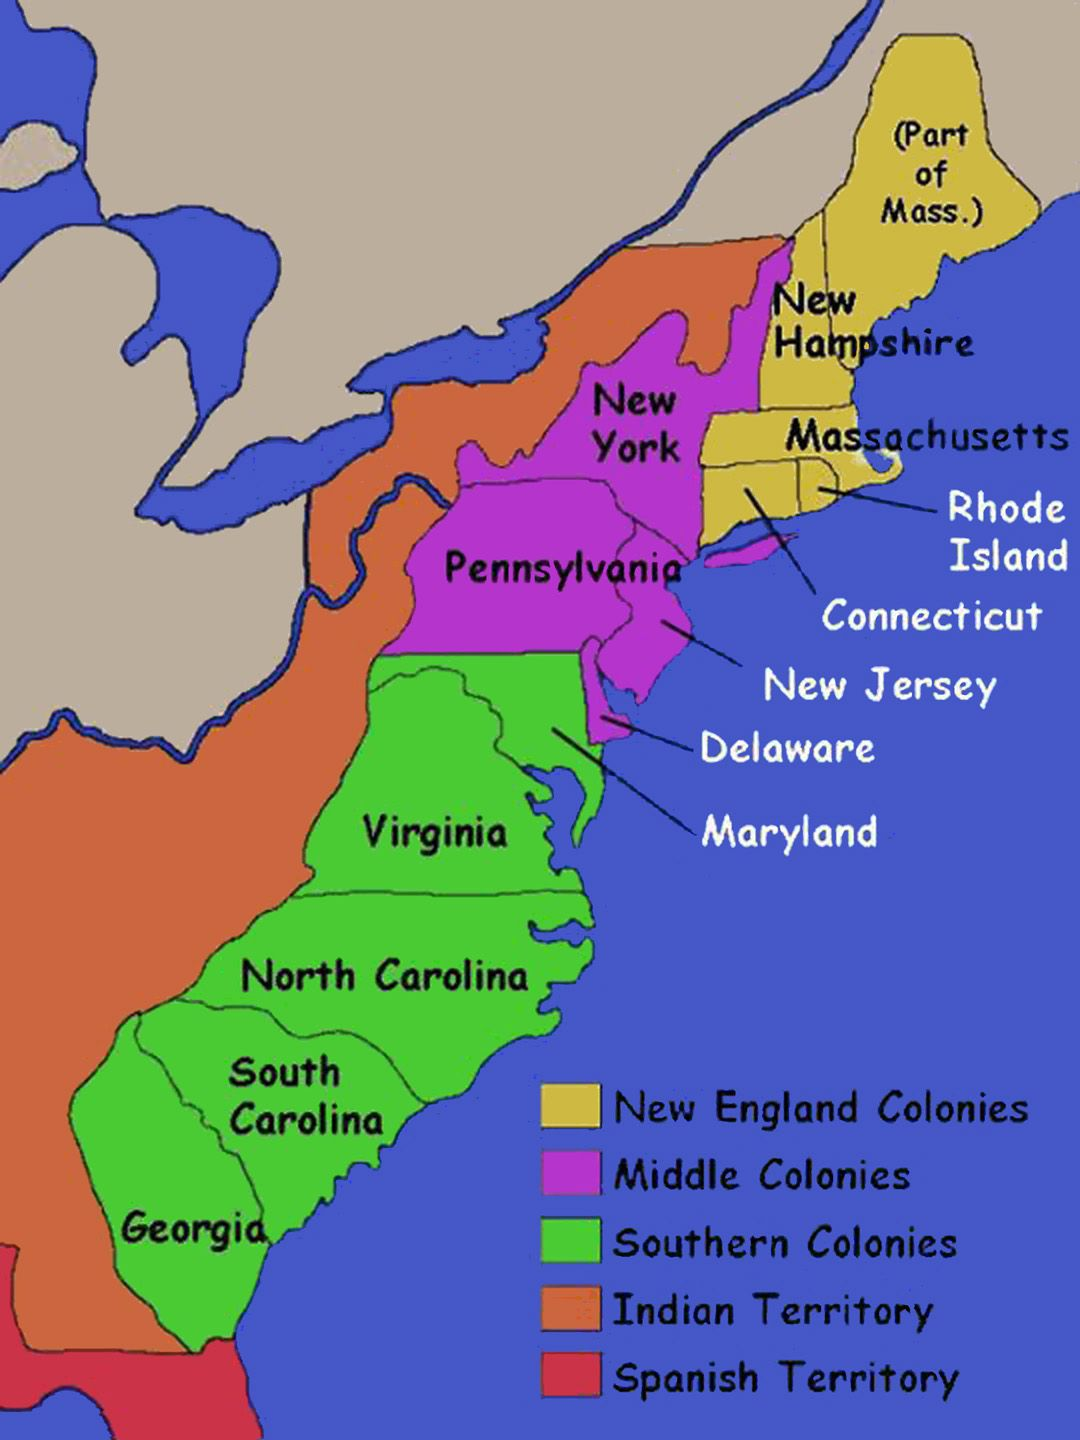 13 colonies report Report abuse transcript of 13 colonies powerpoint project cydney moe msjohnstone period 8 grade 7 georgia the 13 colonies all about georgia the starting of georgia map facts of georgia georgia images interesting facts: georgia what is the purpose of georgia why was it started georgia was started for people in debt.